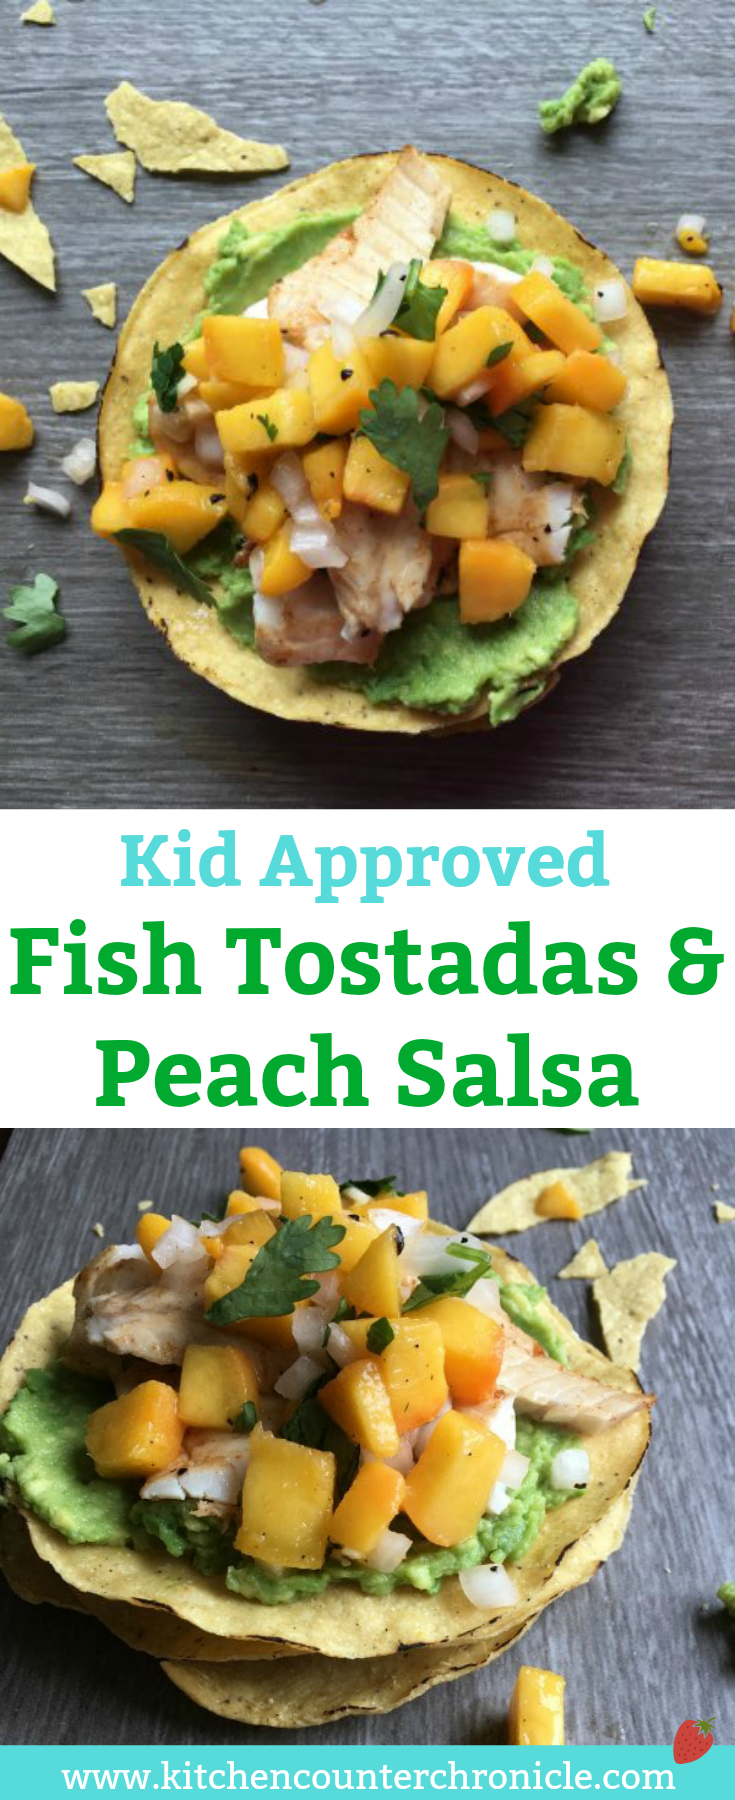 Fish Tostadas and Peach Salsa - A deliciously simple way to get the kids to eat fish! White fish and peach salsa make these taco/tostadas a hit with families. | Taco Recipes | Peach Salsa Recipe | Family Dinner Recipes | Seafood Recipes |